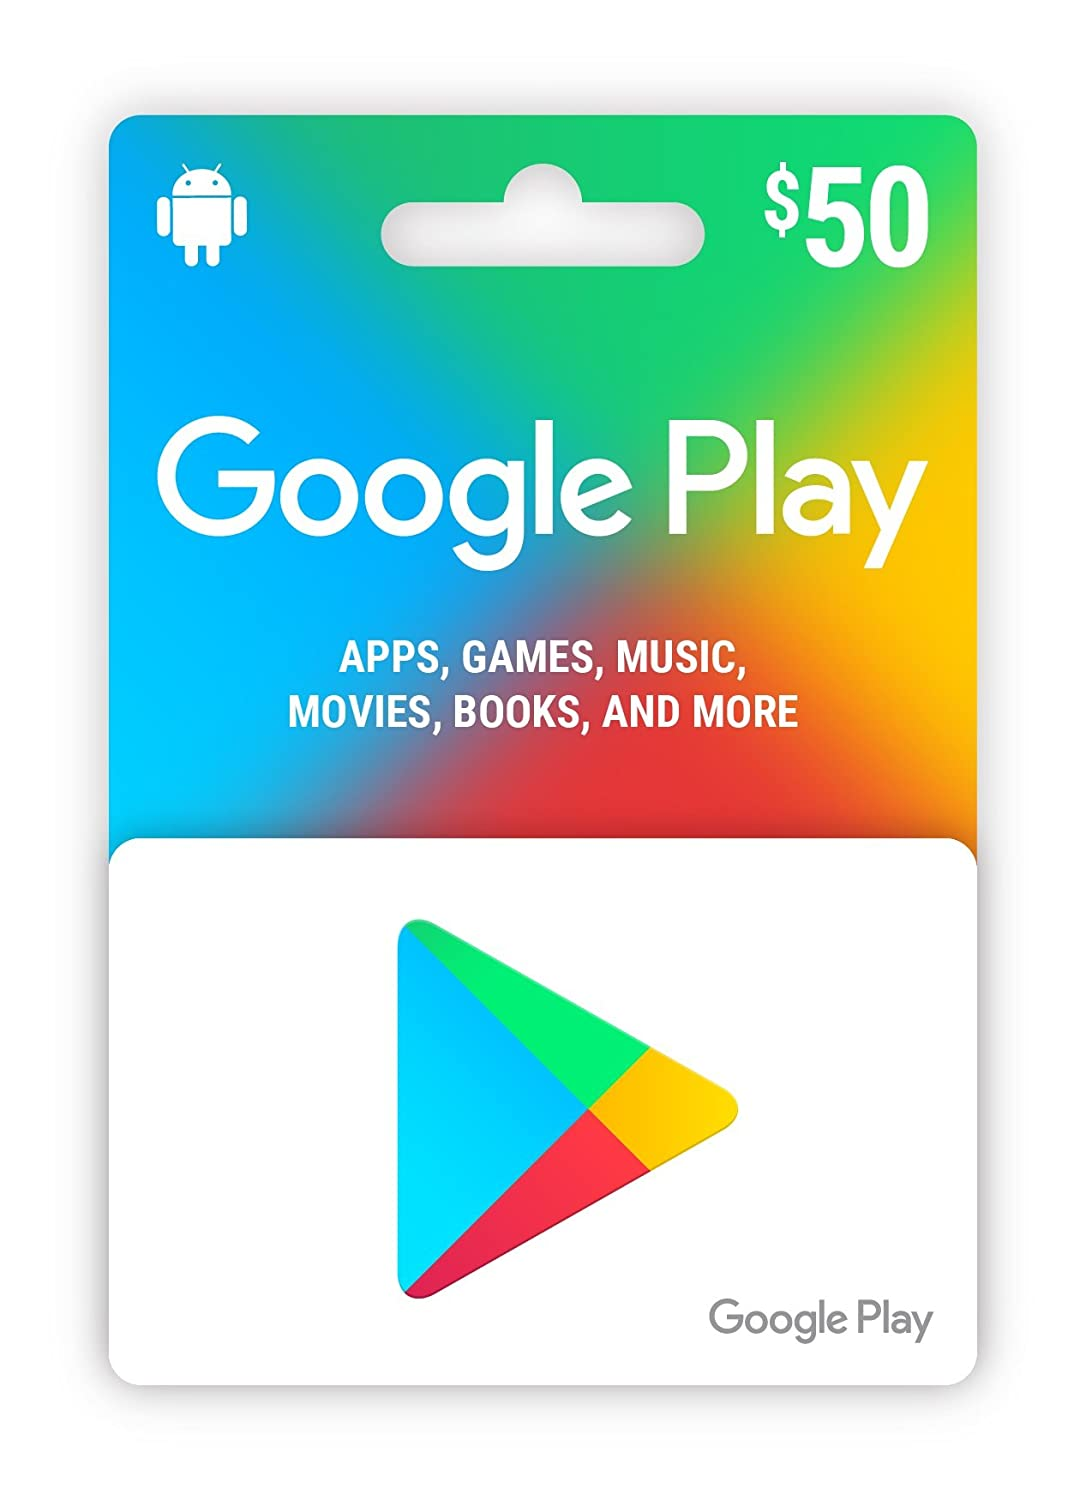 Amazon.com: Google play $50 Gift card for Android: Tarjetas ...